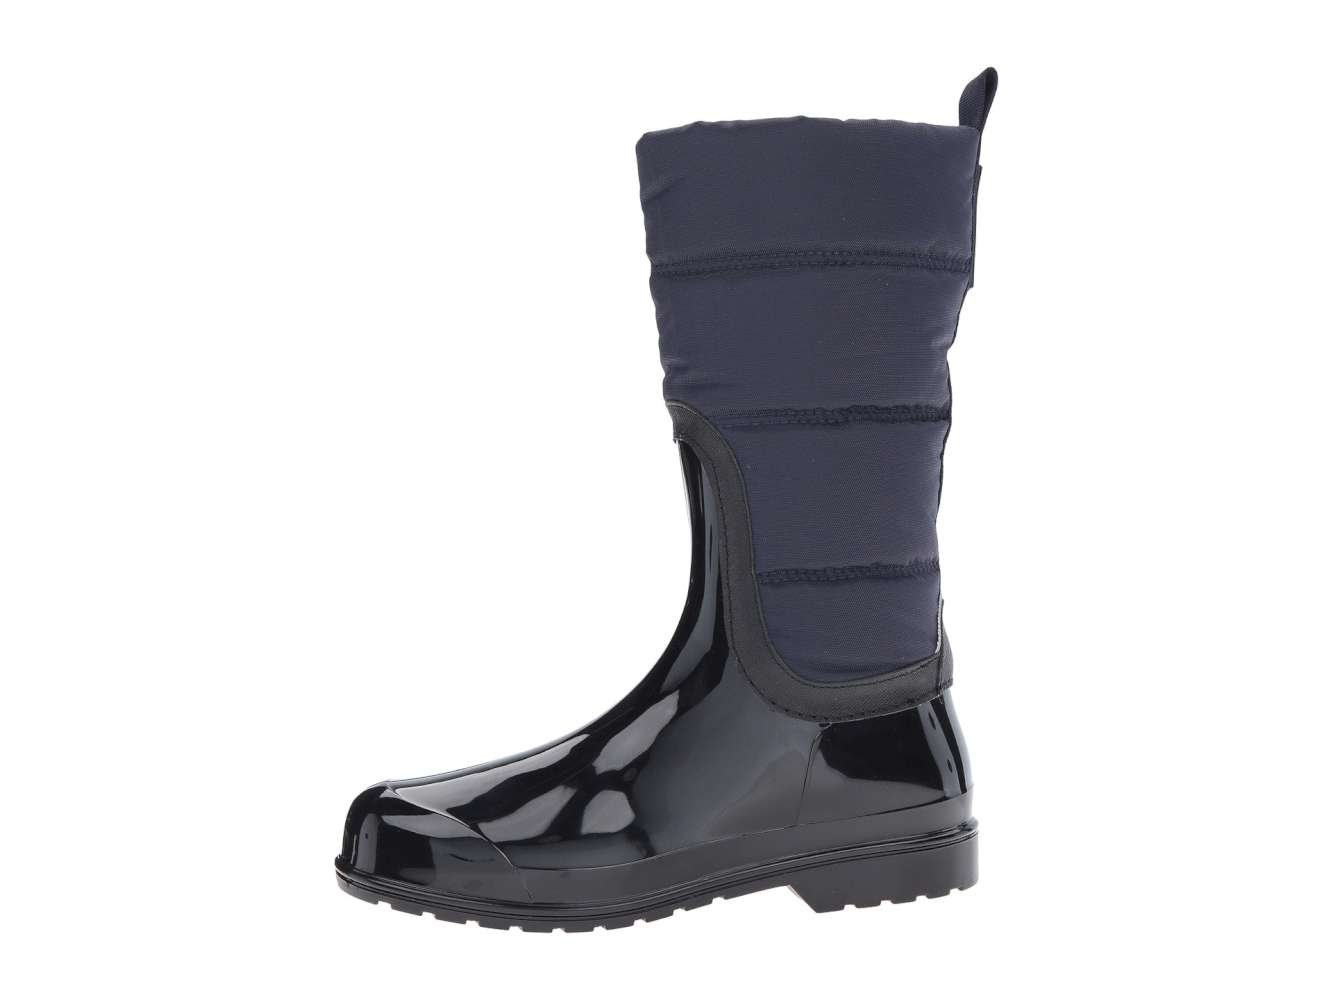 MICHAEL Michael Kors Womens Cabot Quilted Rainboot, Admiral/Black, Size 9.0